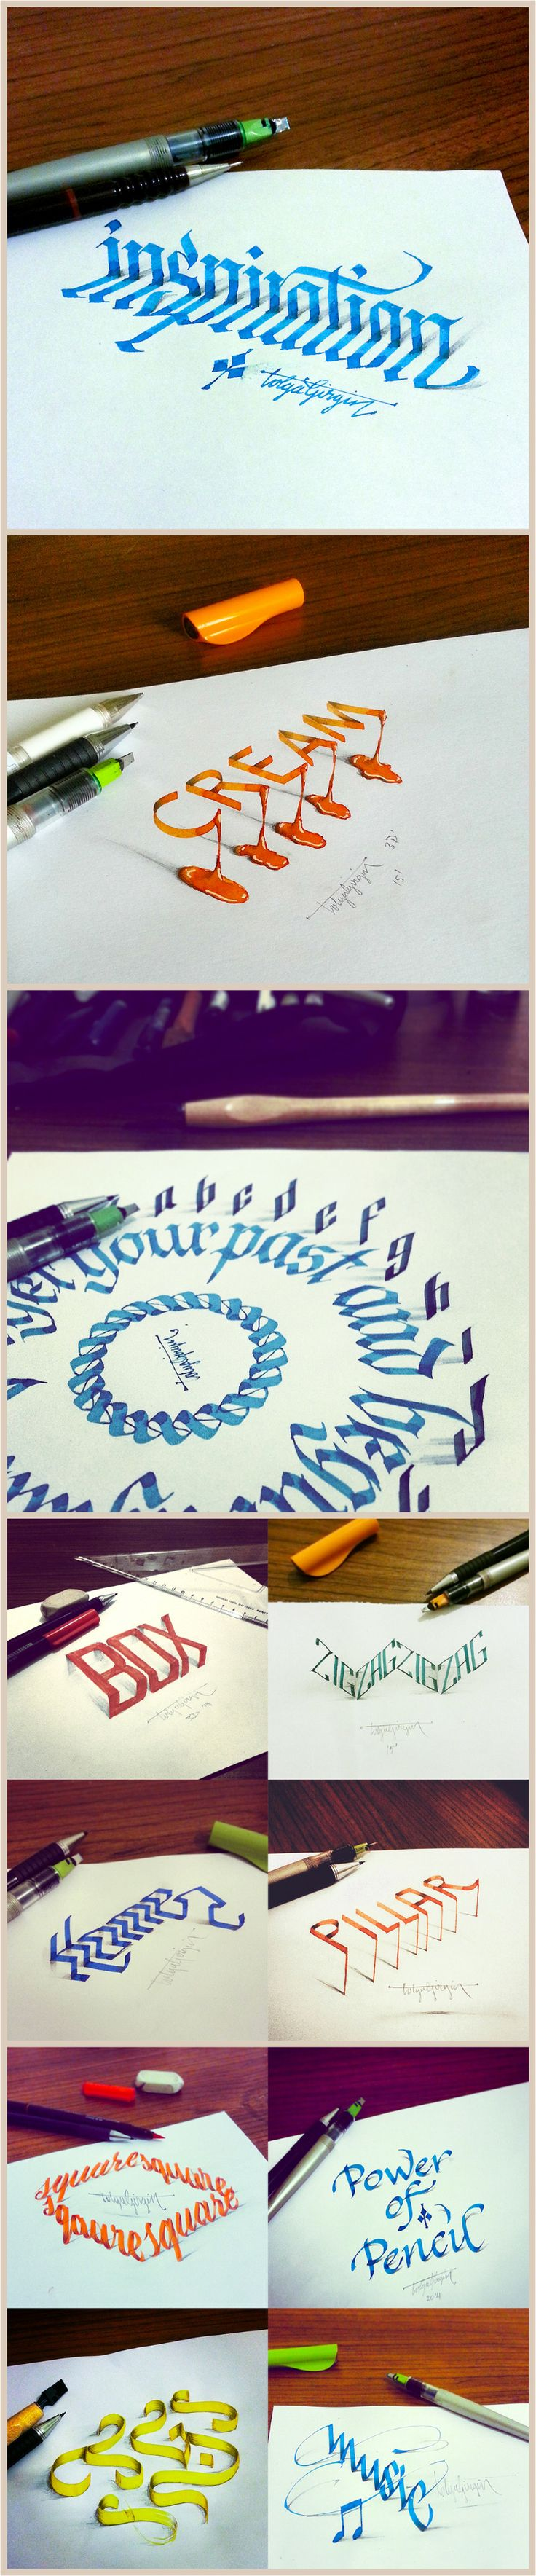 3D Calligraphy Experiments: Turkish graphic designer Tolga Girgin experiments with 3D calligraphy. Using shading and shadows Girgin creates three-dimensional letters that float, stand, drip, and slant.